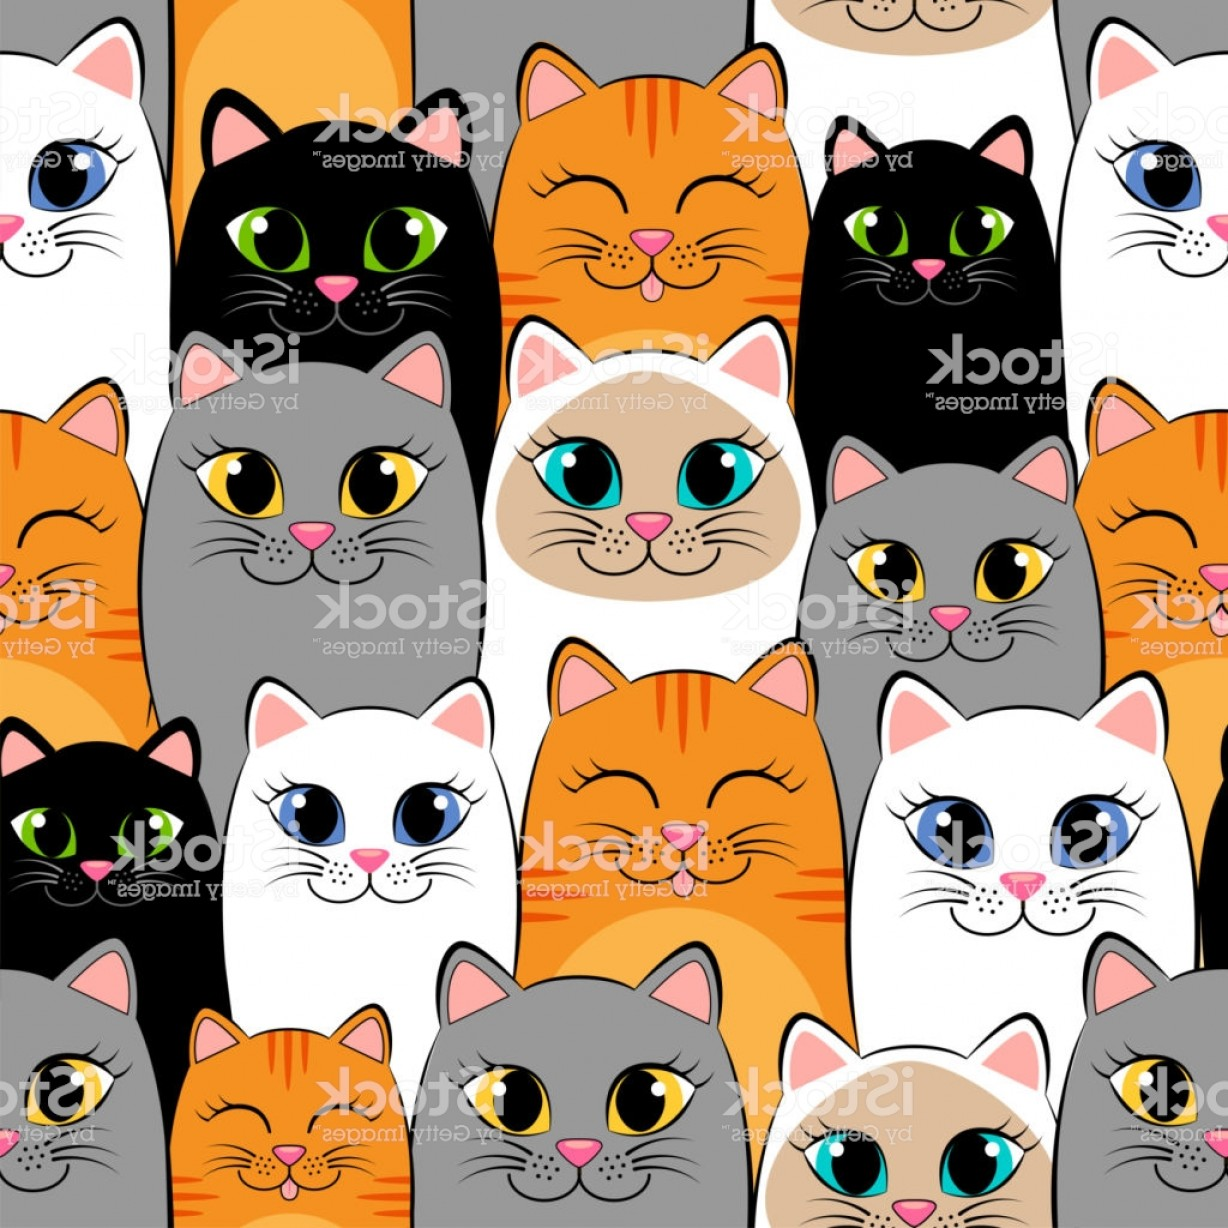 Siamese Cat Vector Transparent Background: Seamless Pattern With Cats Background With Gray White Black Ginger And Siamese Gm